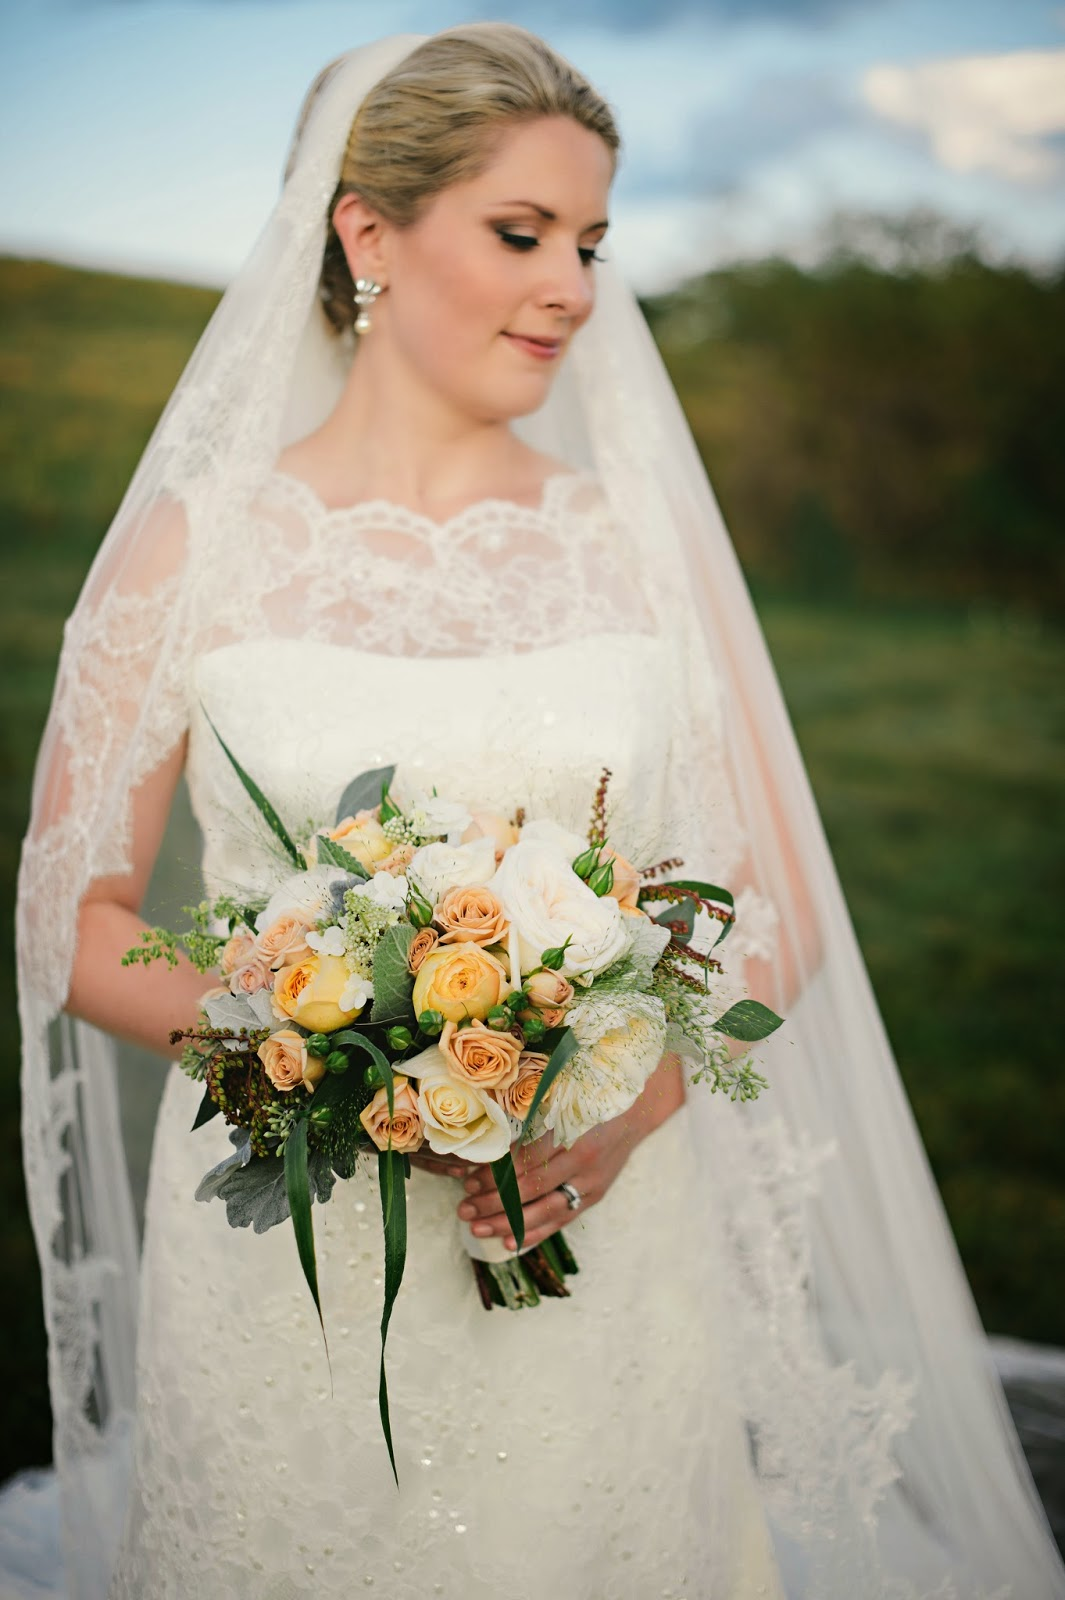 les fleurs : barn at gibbet hill : late summer wedding : barn wedding : mustard yellow, ivory, antique cream, wispy grasses